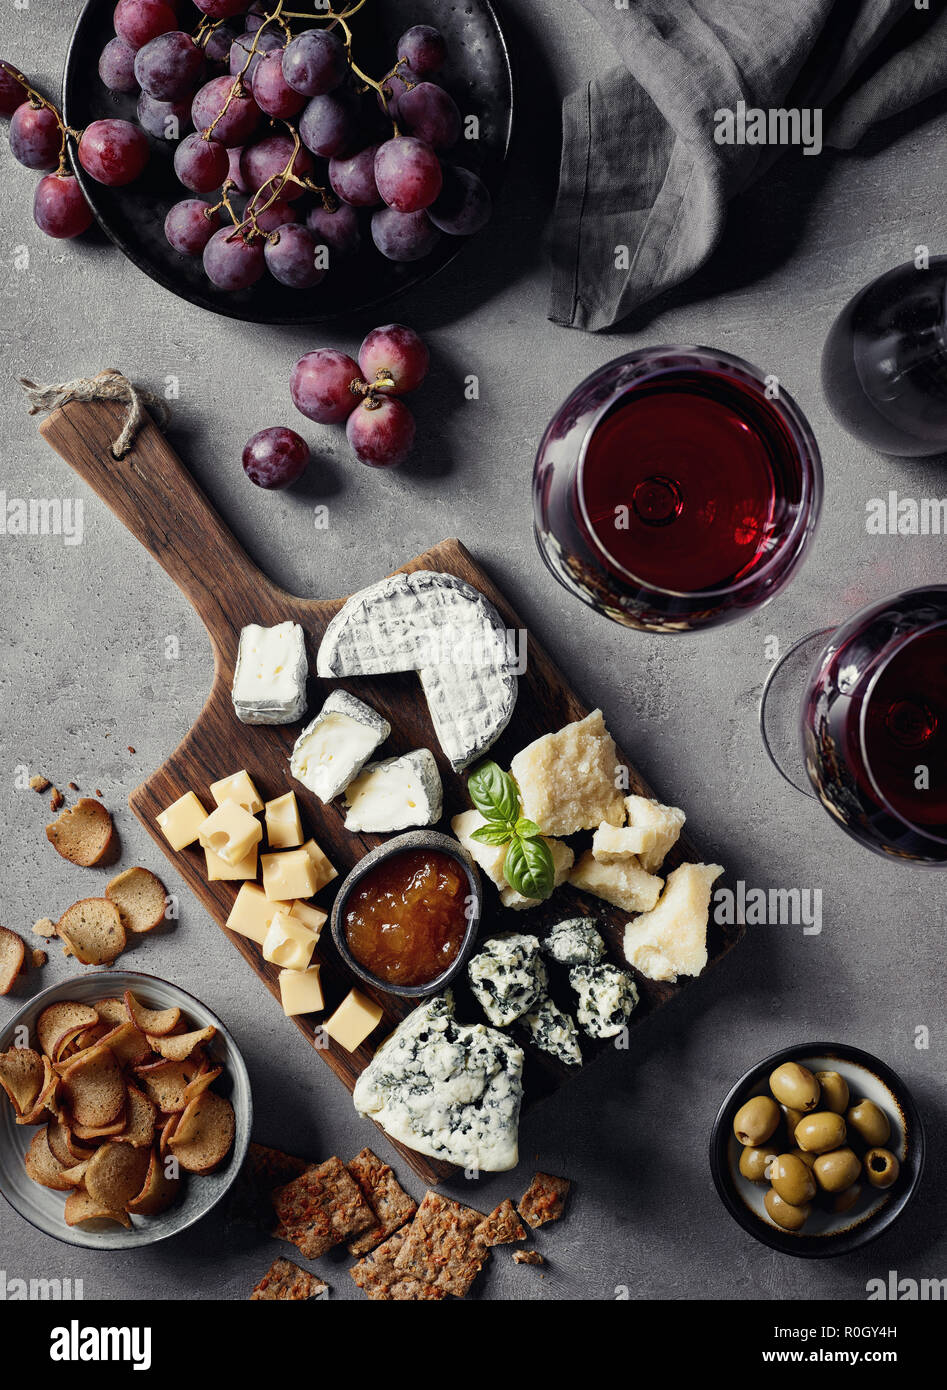 Cheese Plate Served With Red Wine Olives Grapes Jam And Bread Snacks On Gray Marble Background Top View Stock Photo Alamy